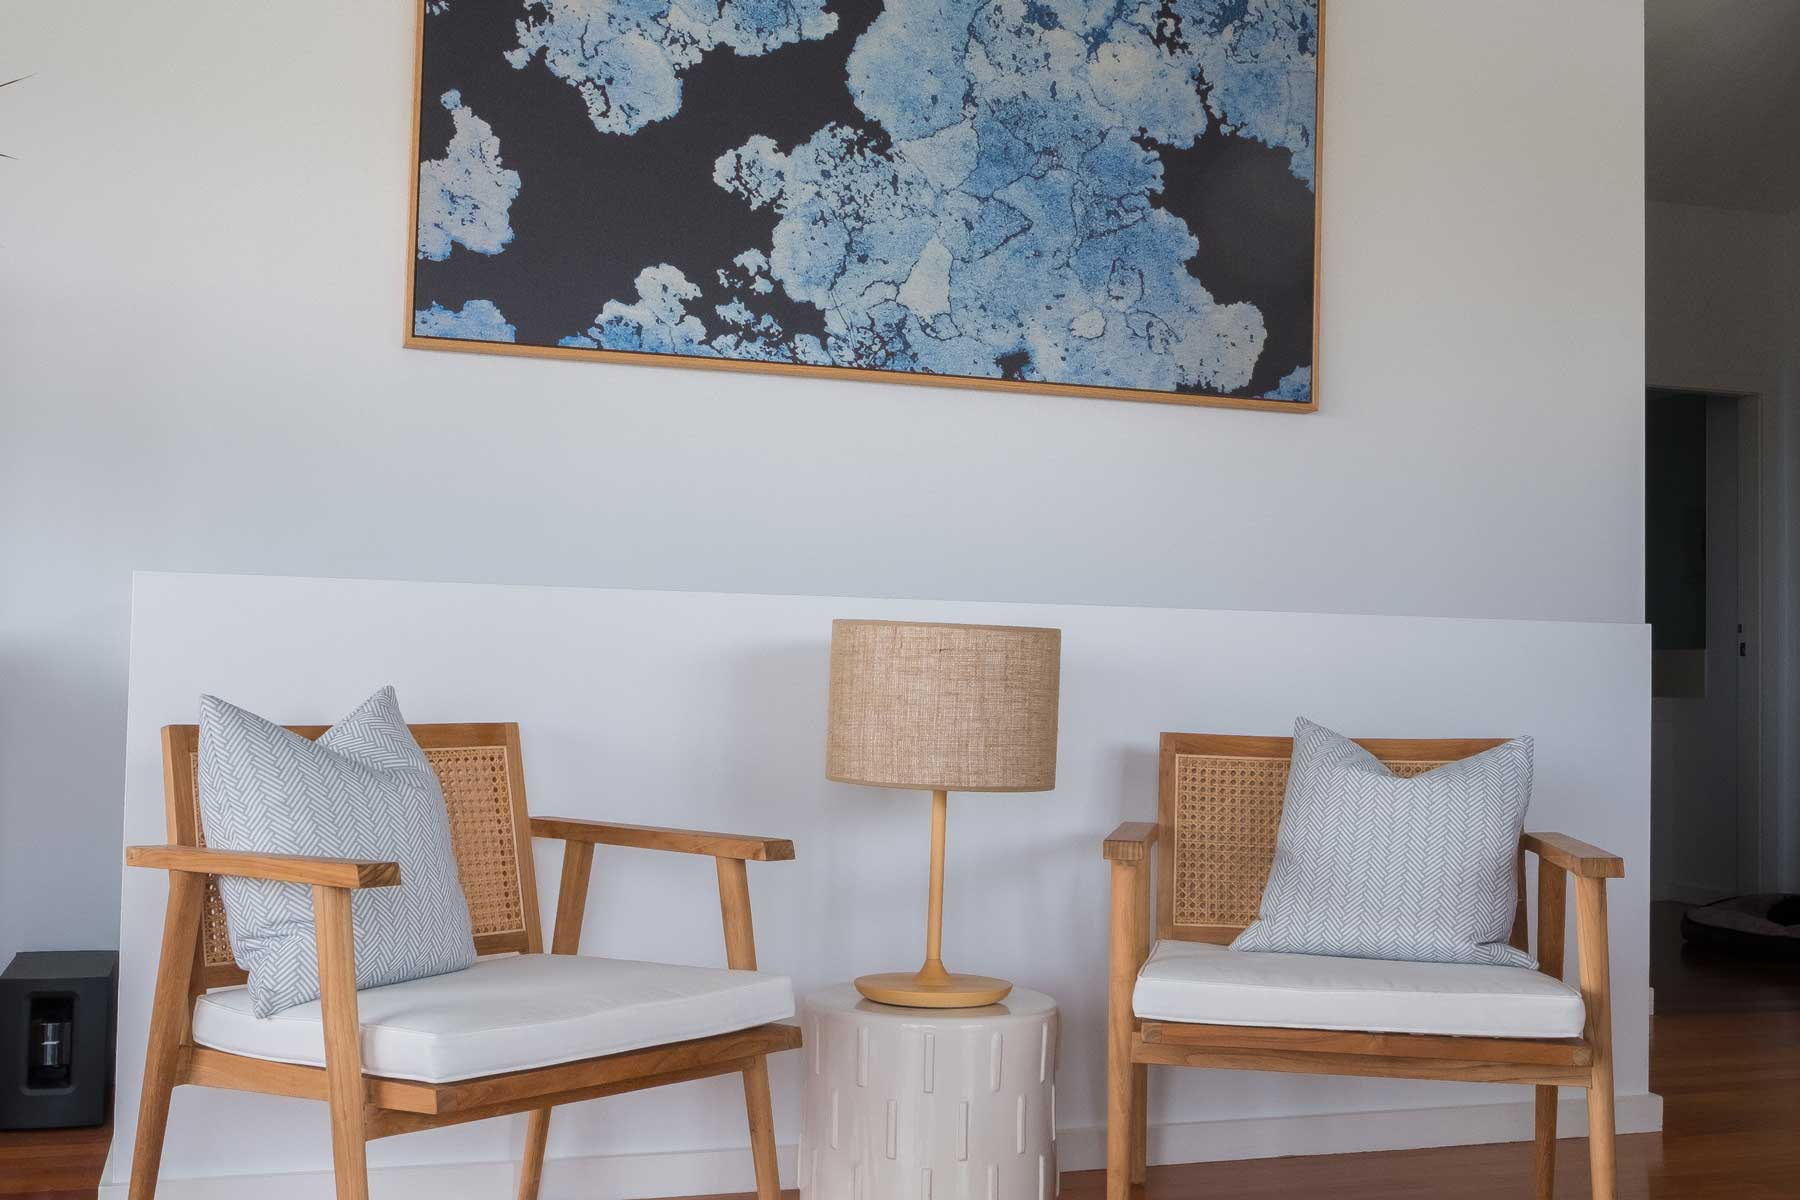 Pippa's Open Plan Coastal Retreat - after - chairs